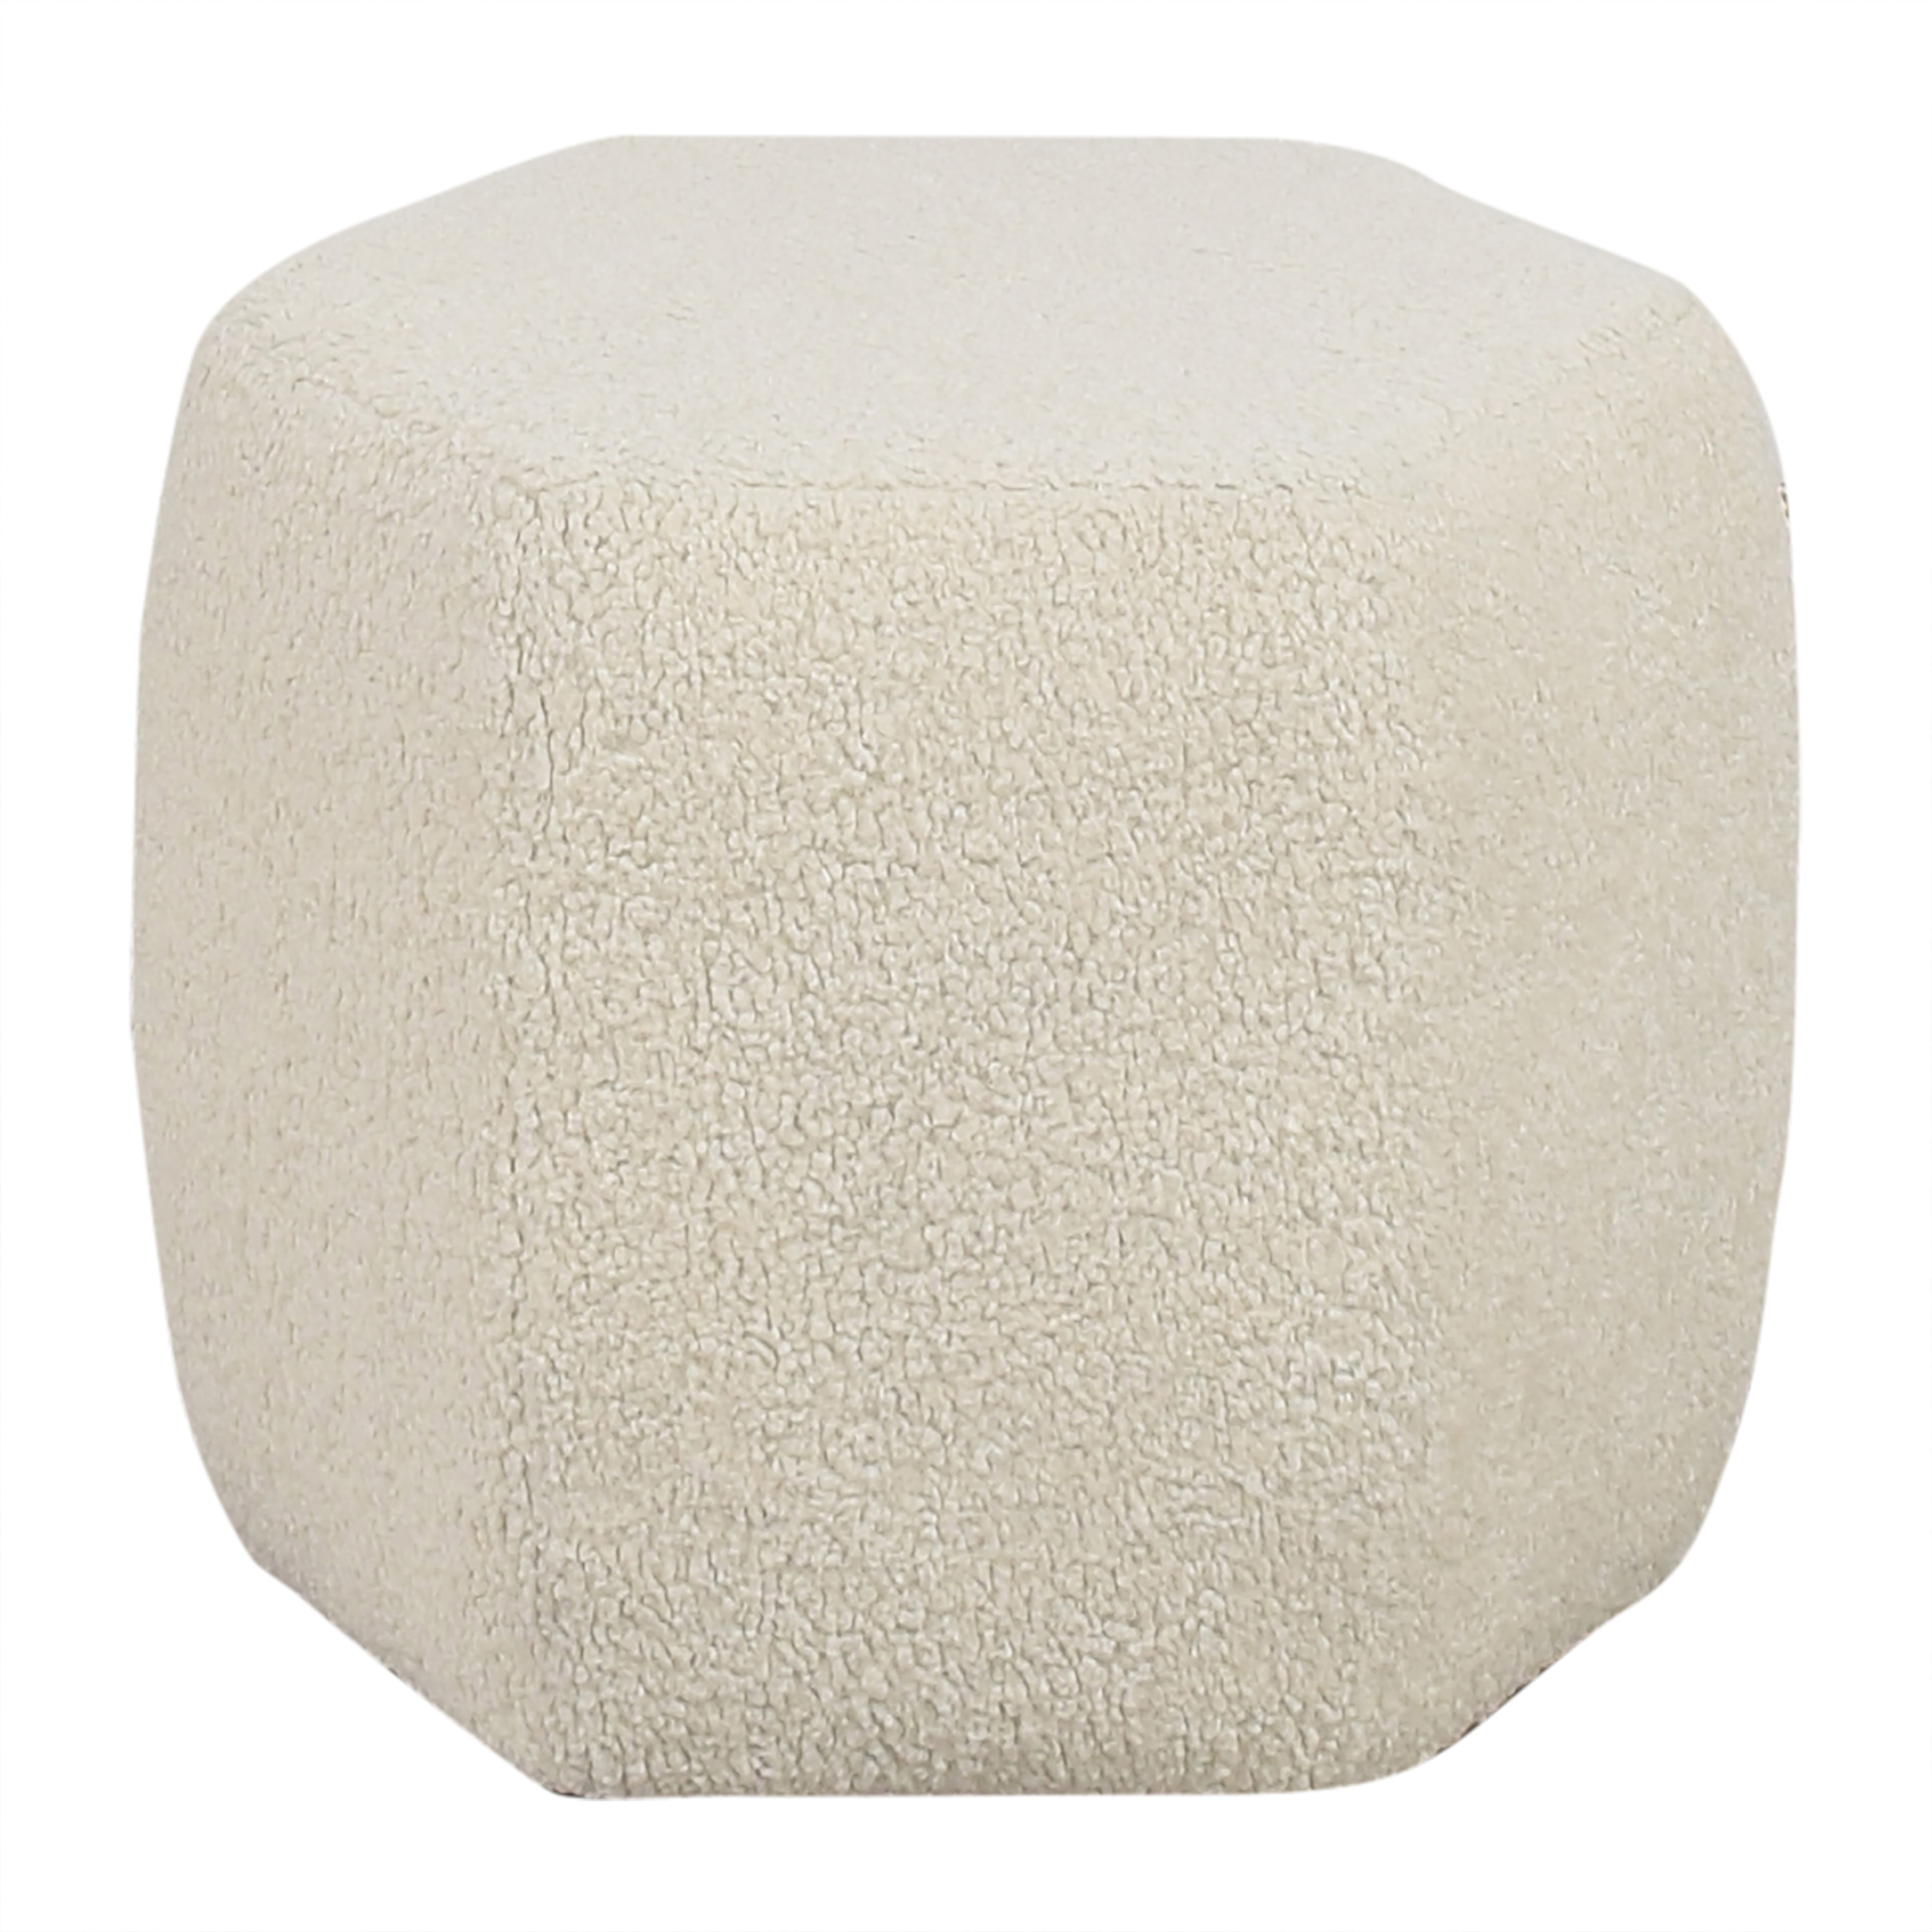 buy ABC Carpet & Home Joe's Hex Ottoman ABC Carpet & Home Chairs